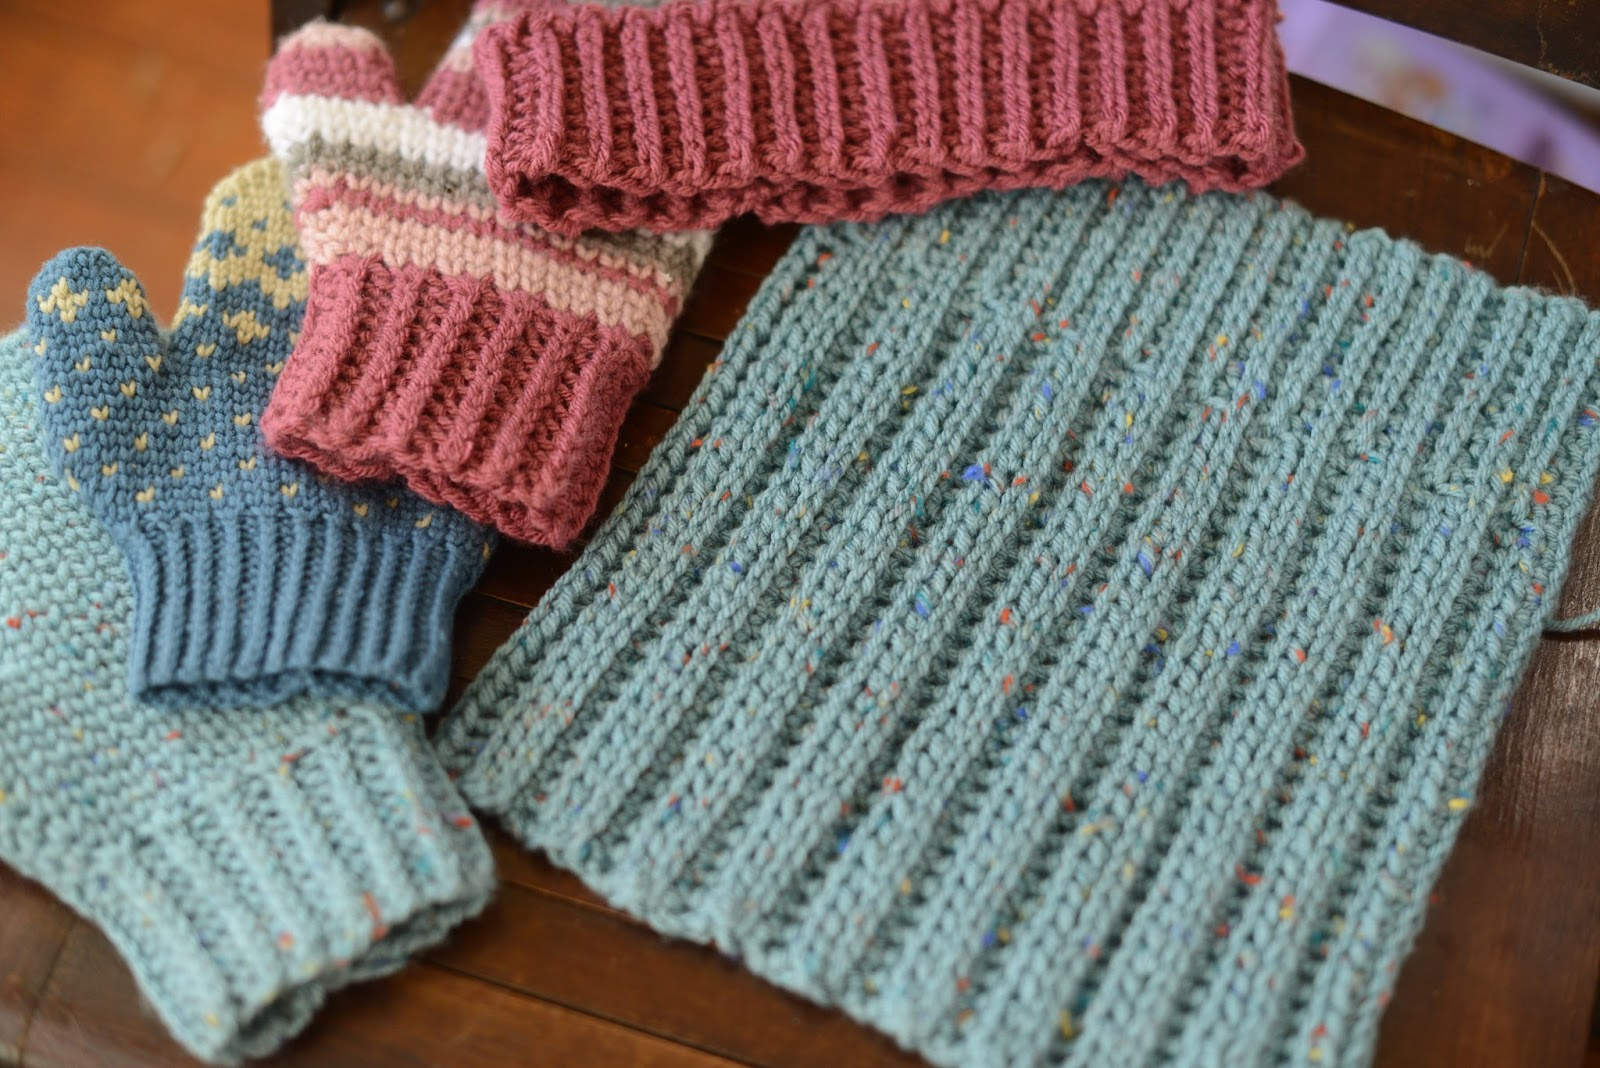 Crochet Rib Stitch : ... of crochet ribbing that is made with slip stitches with a yarn-over